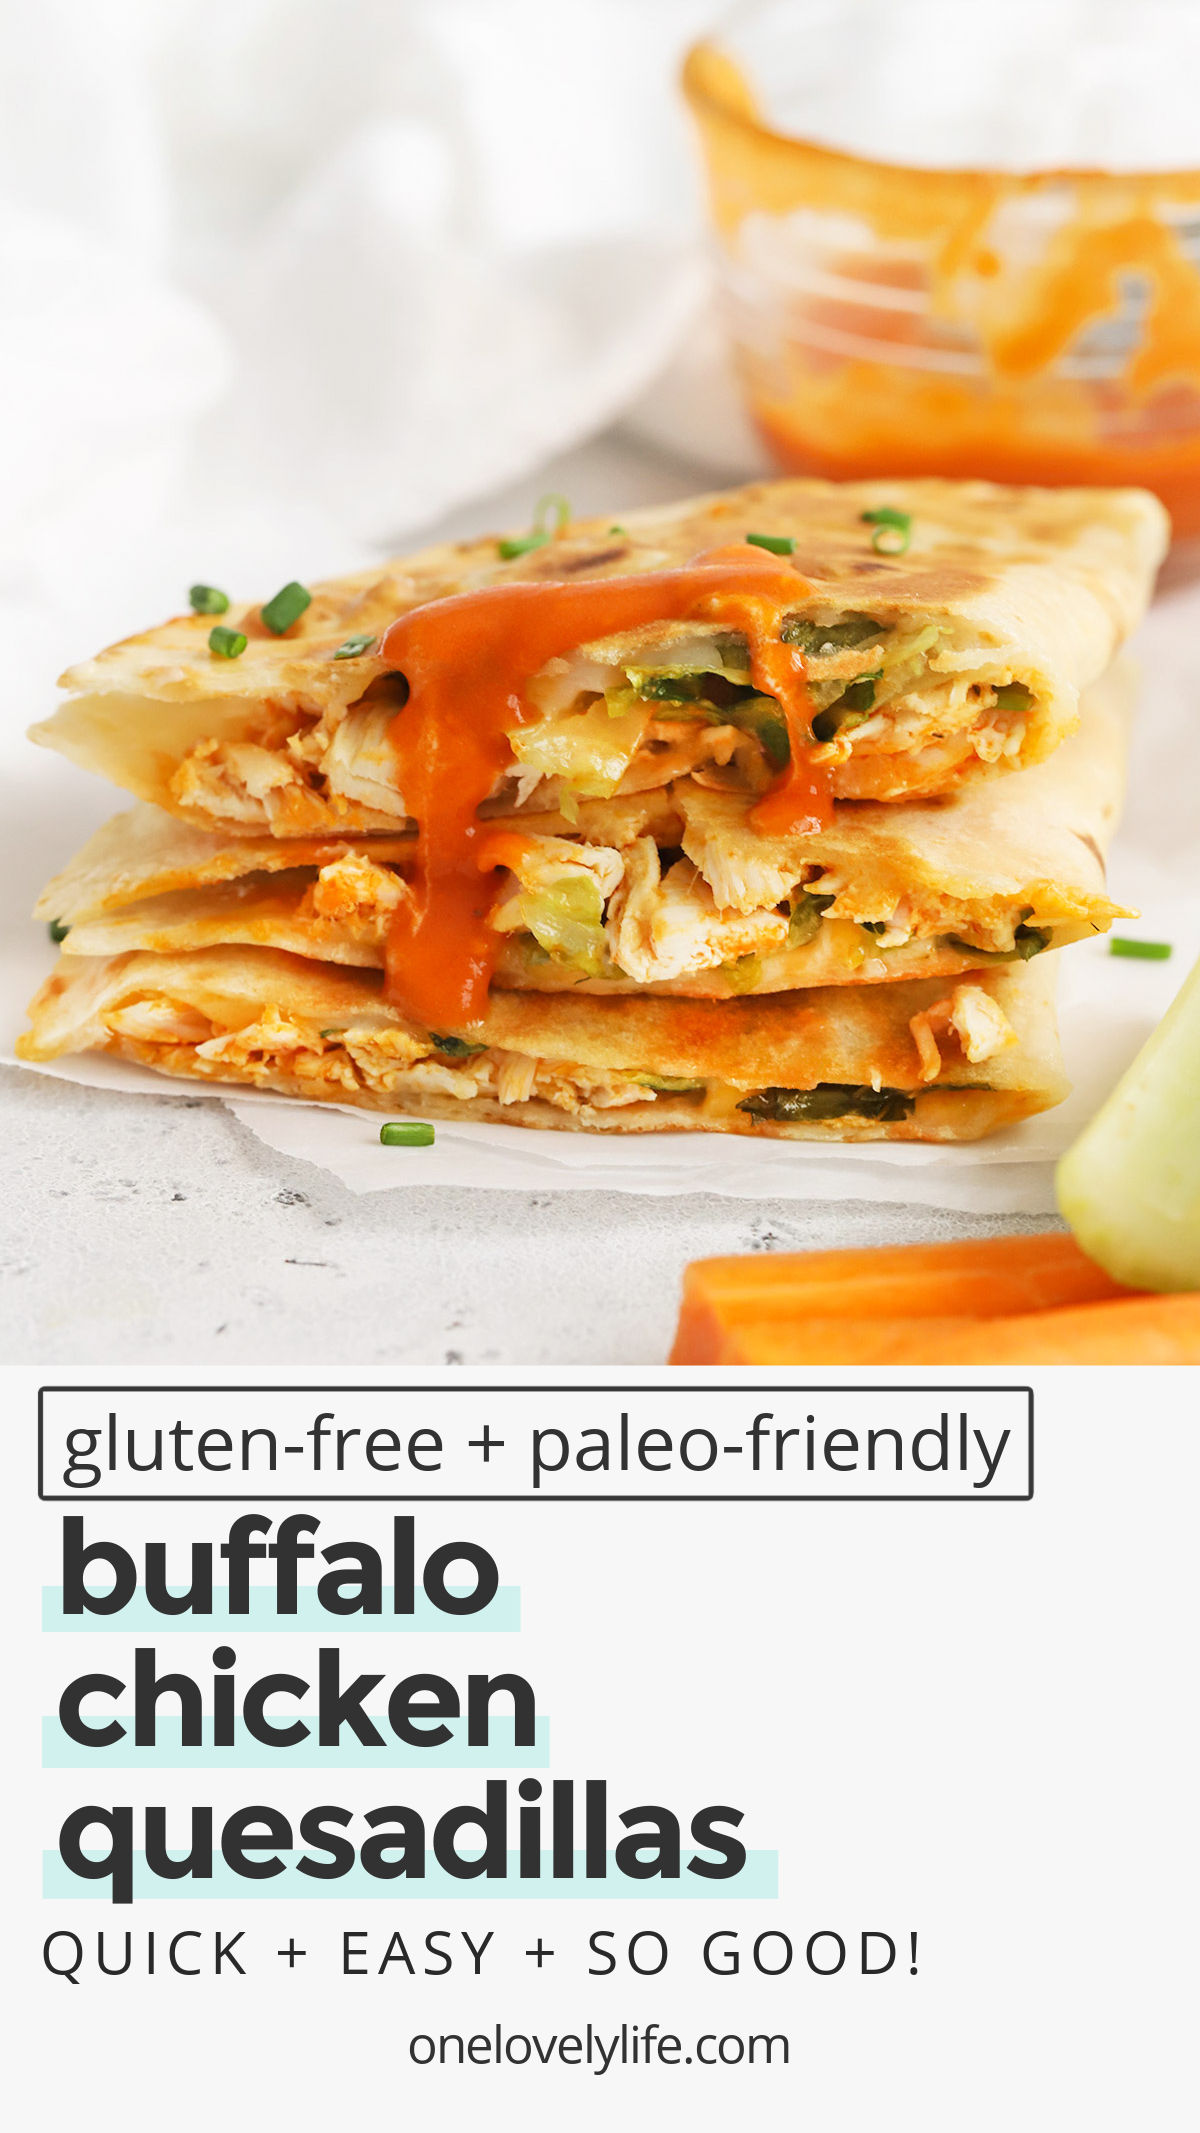 Buffalo Chicken Quesadillas - These gluten-free quesadillas are stuffed with Buffalo chicken, creamy ranch, lettuce, and your favorite cheese. They're quick, easy, and MAJORLY delicious! (Gluten-Free, Grain-Free Friendly // Buffalo Quesadillas // Buffalo Chicken Recipes #quesadillas #glutenfree #buffalochicken